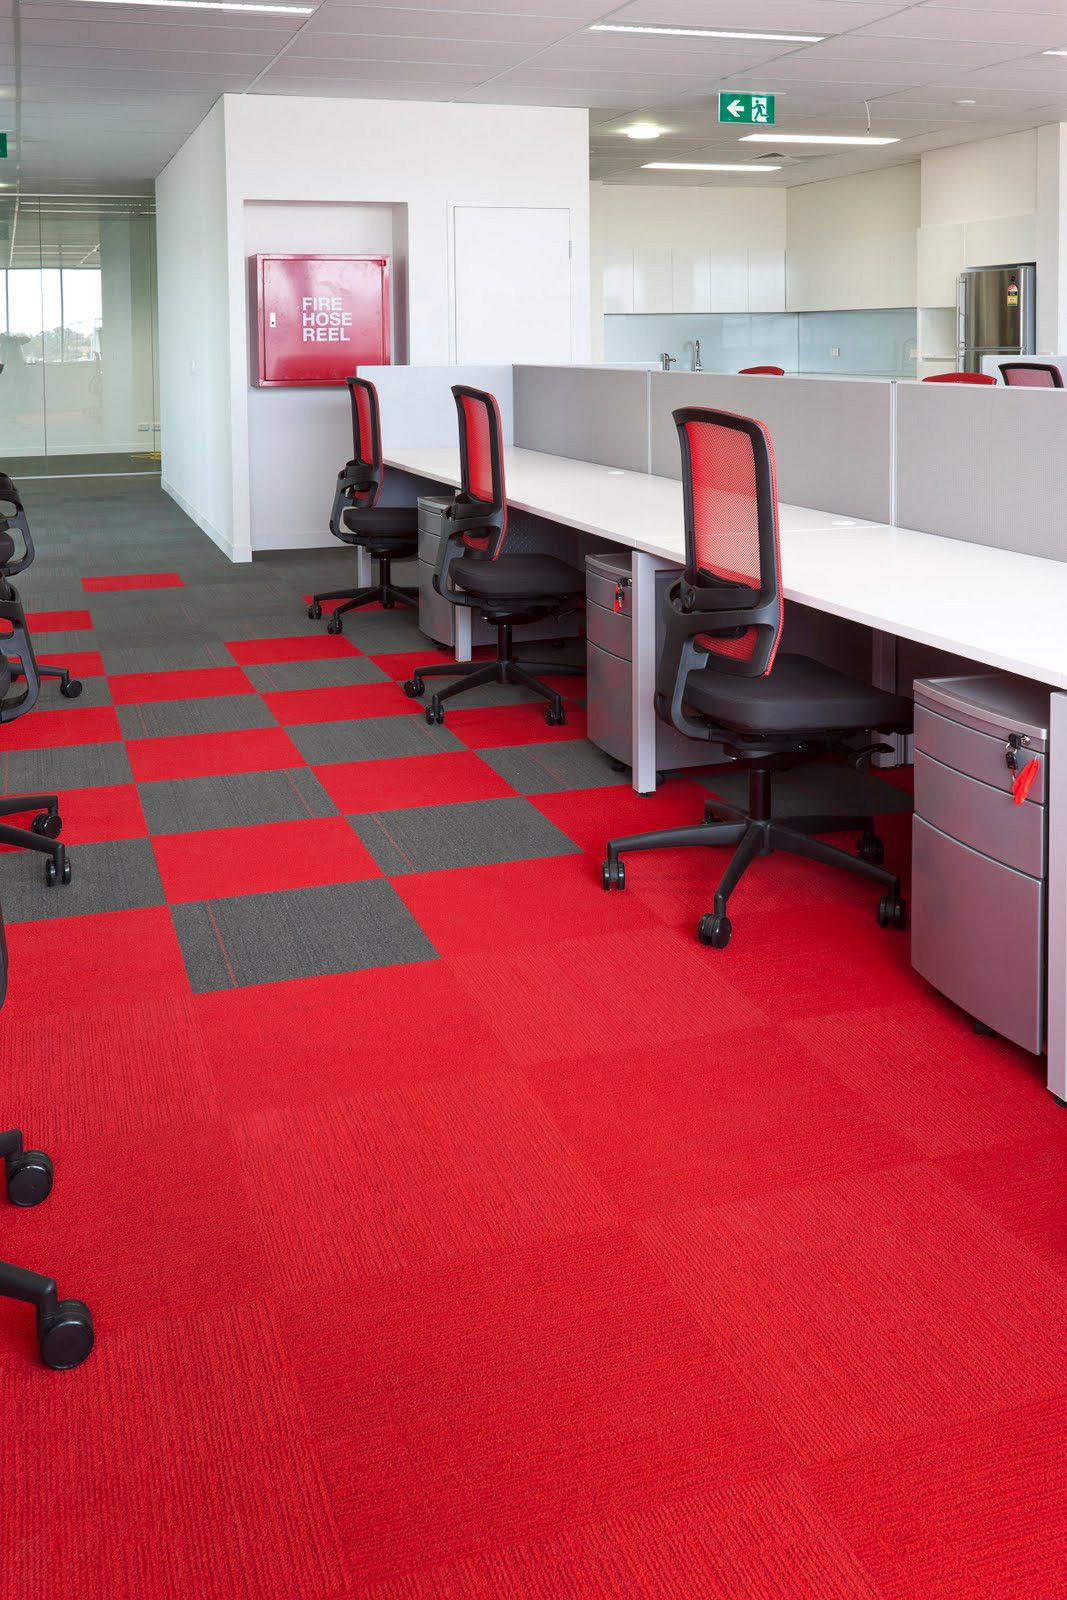 Carpet Tiles Design Pictures